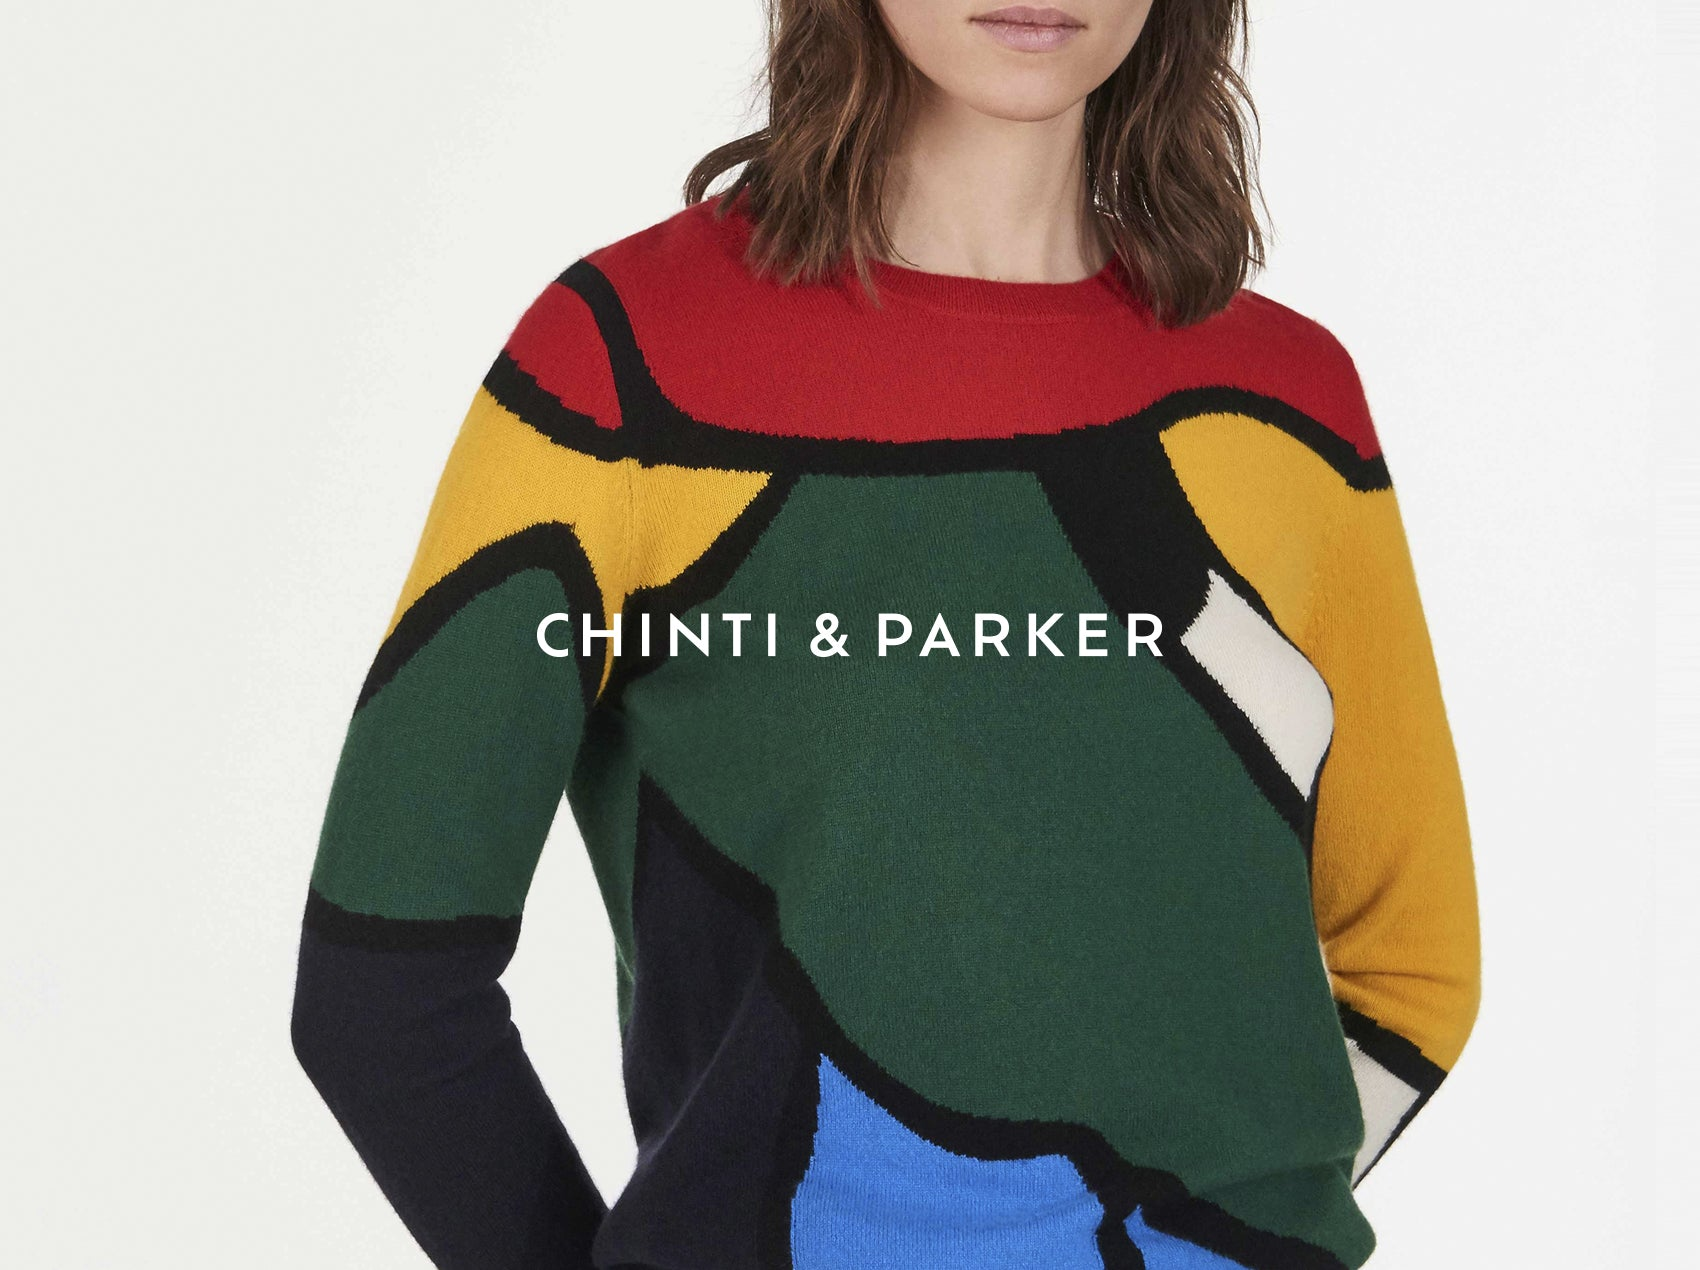 Chinti & Parker Resort '19 Lookbook